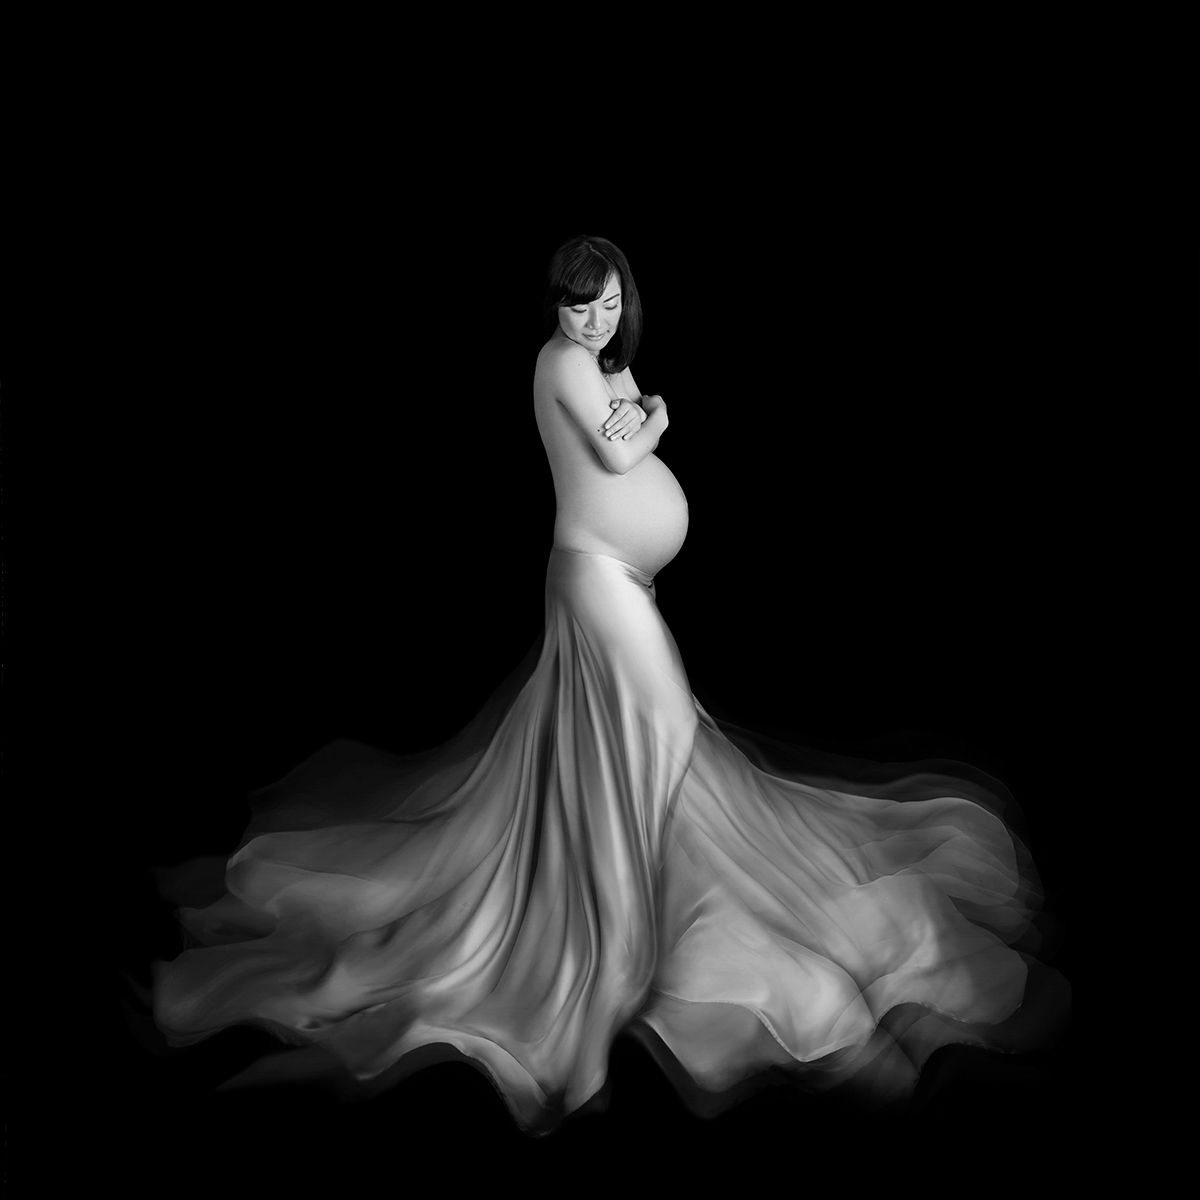 An award winning black and white maternity photograph of a pregnant woman standing up with flowing fabric.